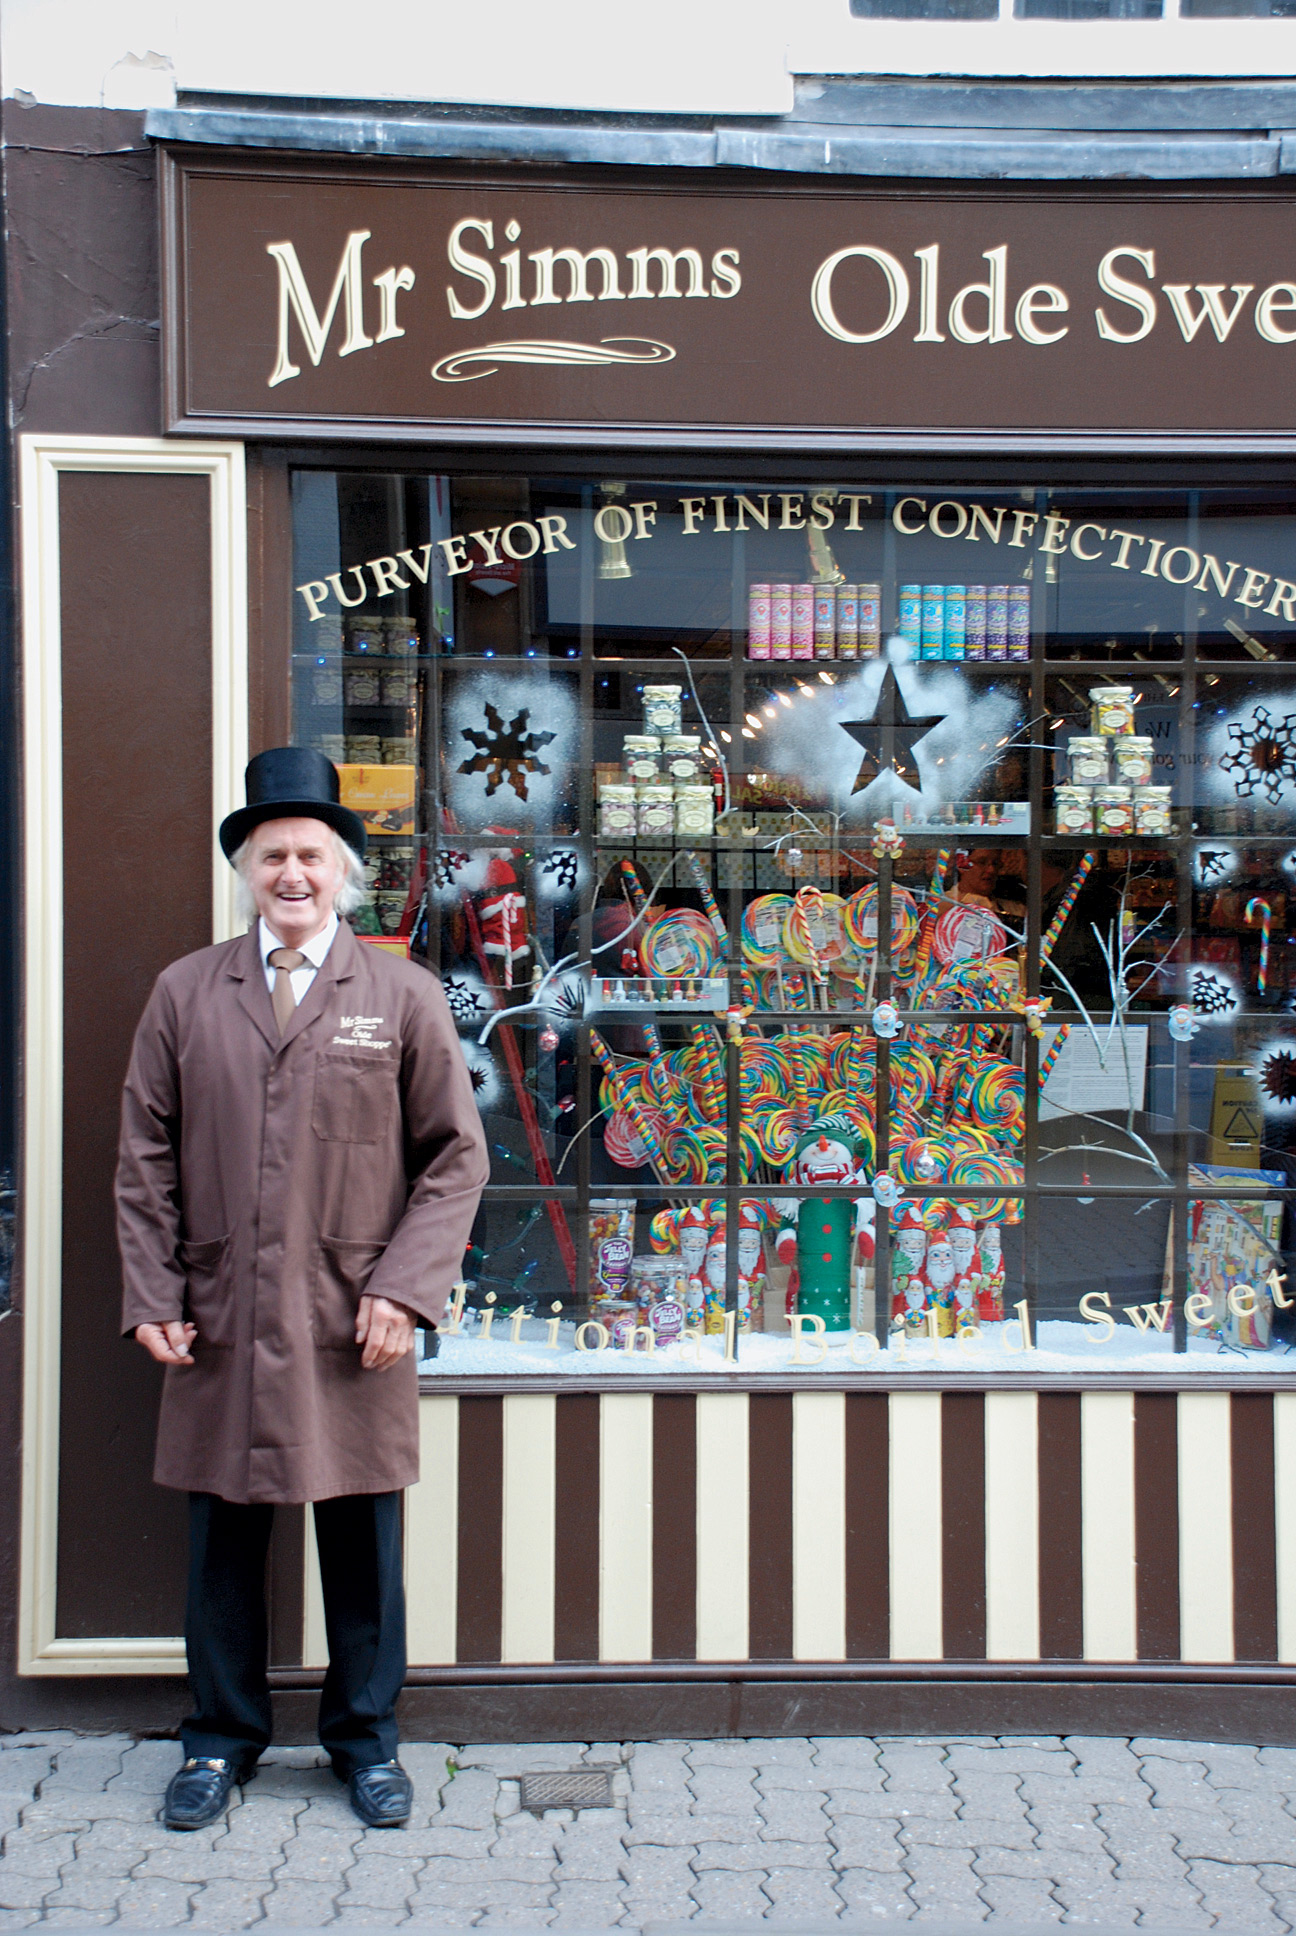 A confectionary shop in Stratford-upon-Avon.